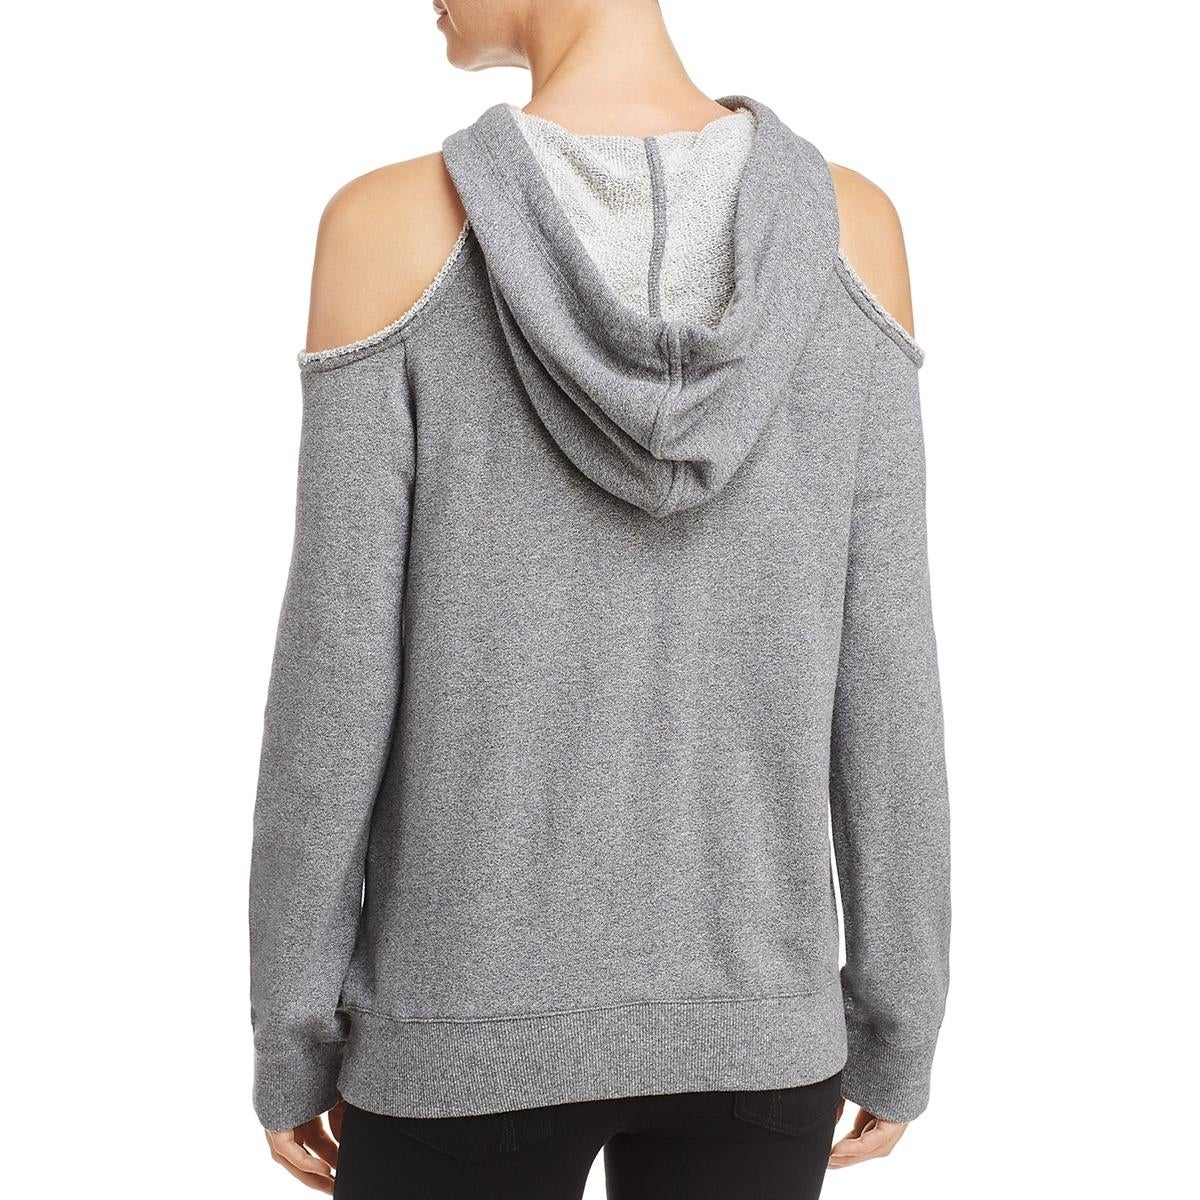 a7eb7726a8c5d Shop Splendid Womens Hoodie Cold Shoulder Sweatshirt - XS - Free Shipping  On Orders Over  45 - Overstock - 25715780